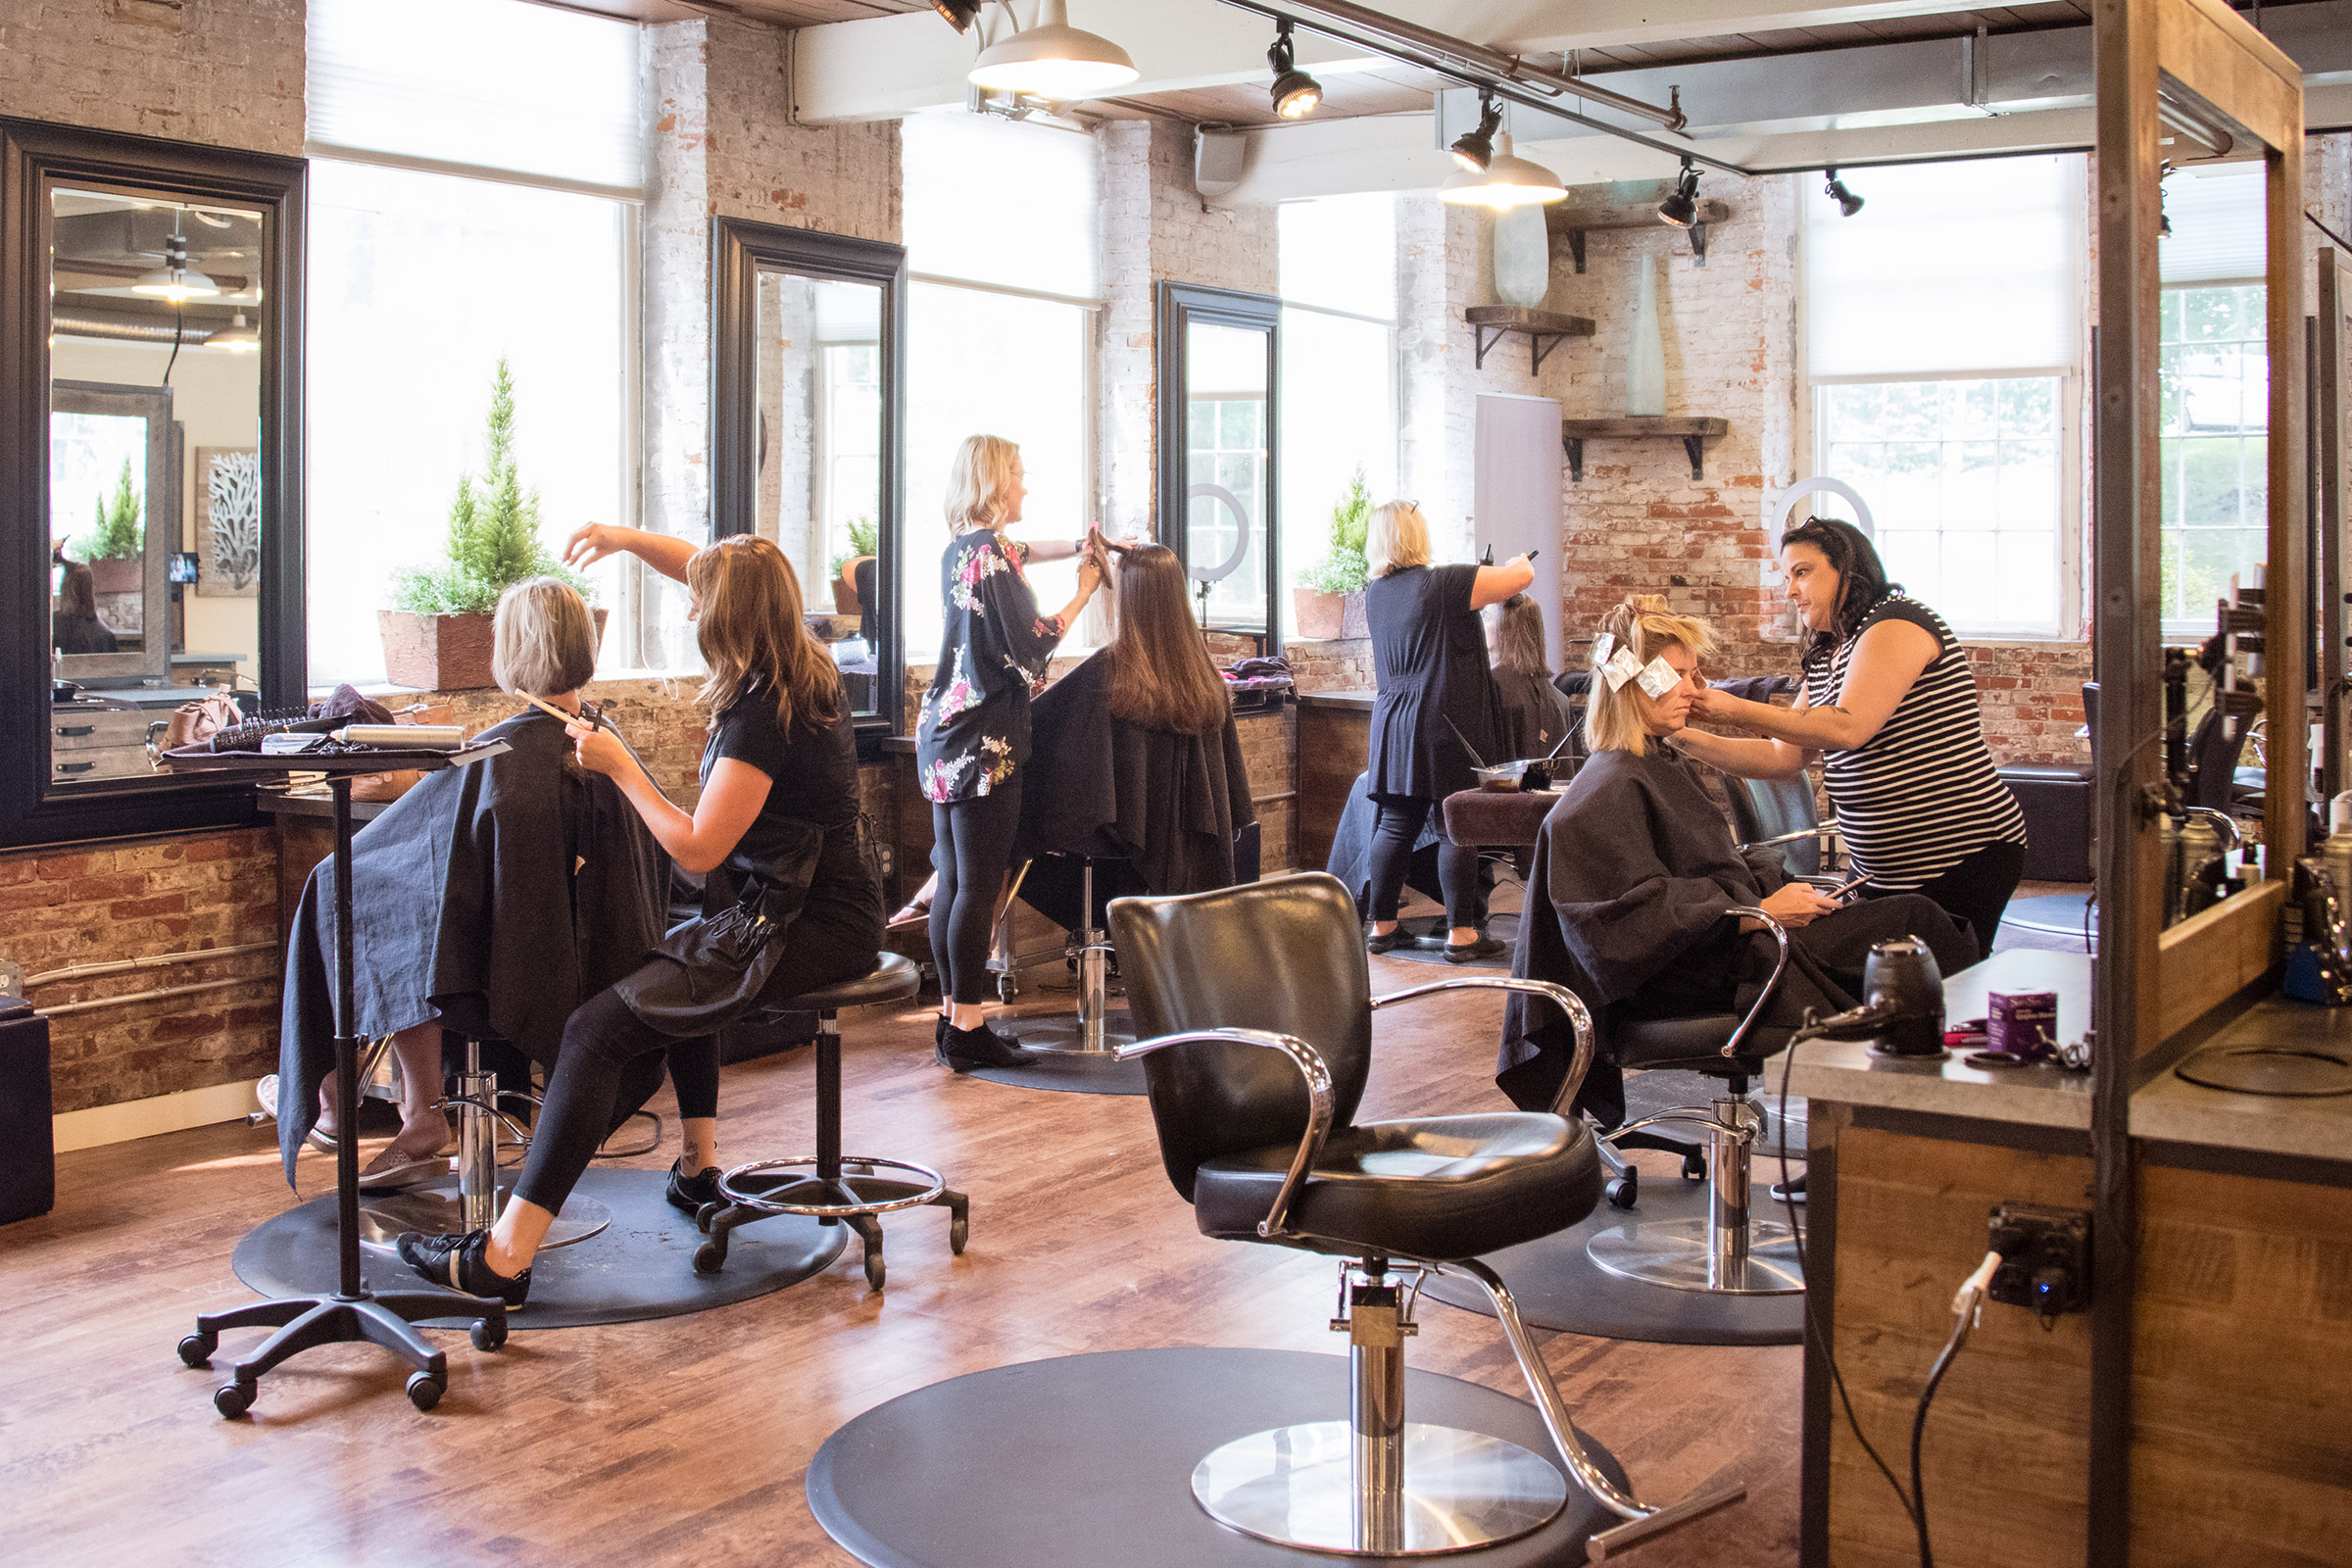 interior overview of a busy salon with stylists working, photographed by jamie bannon photography.